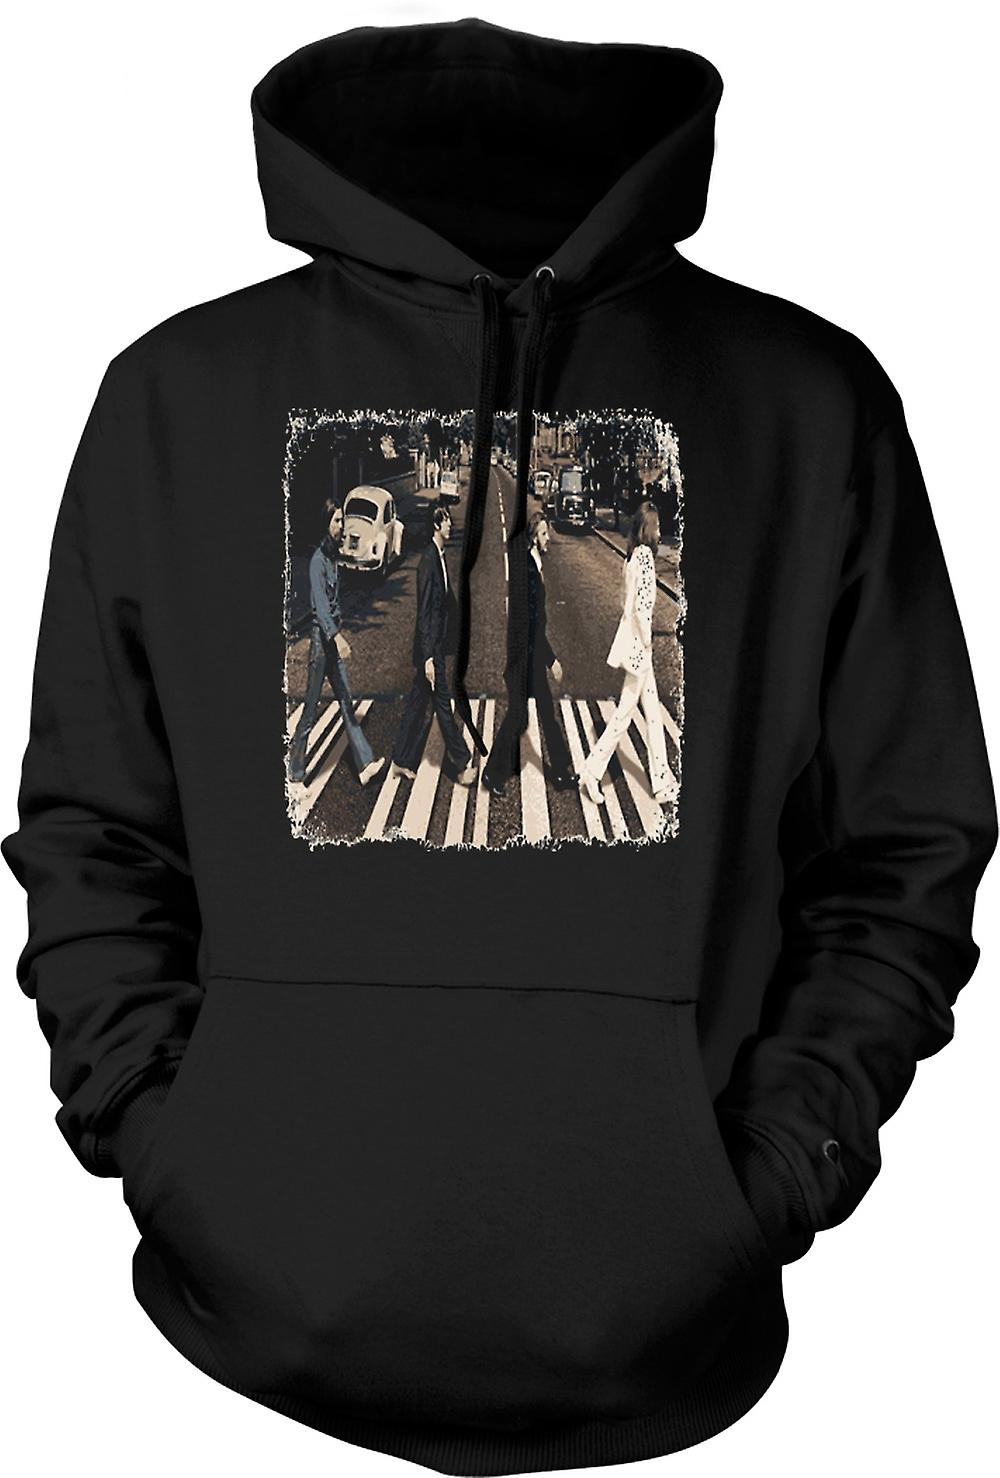 Kids Hoodie - Beatles - Abbey Road - Album Art